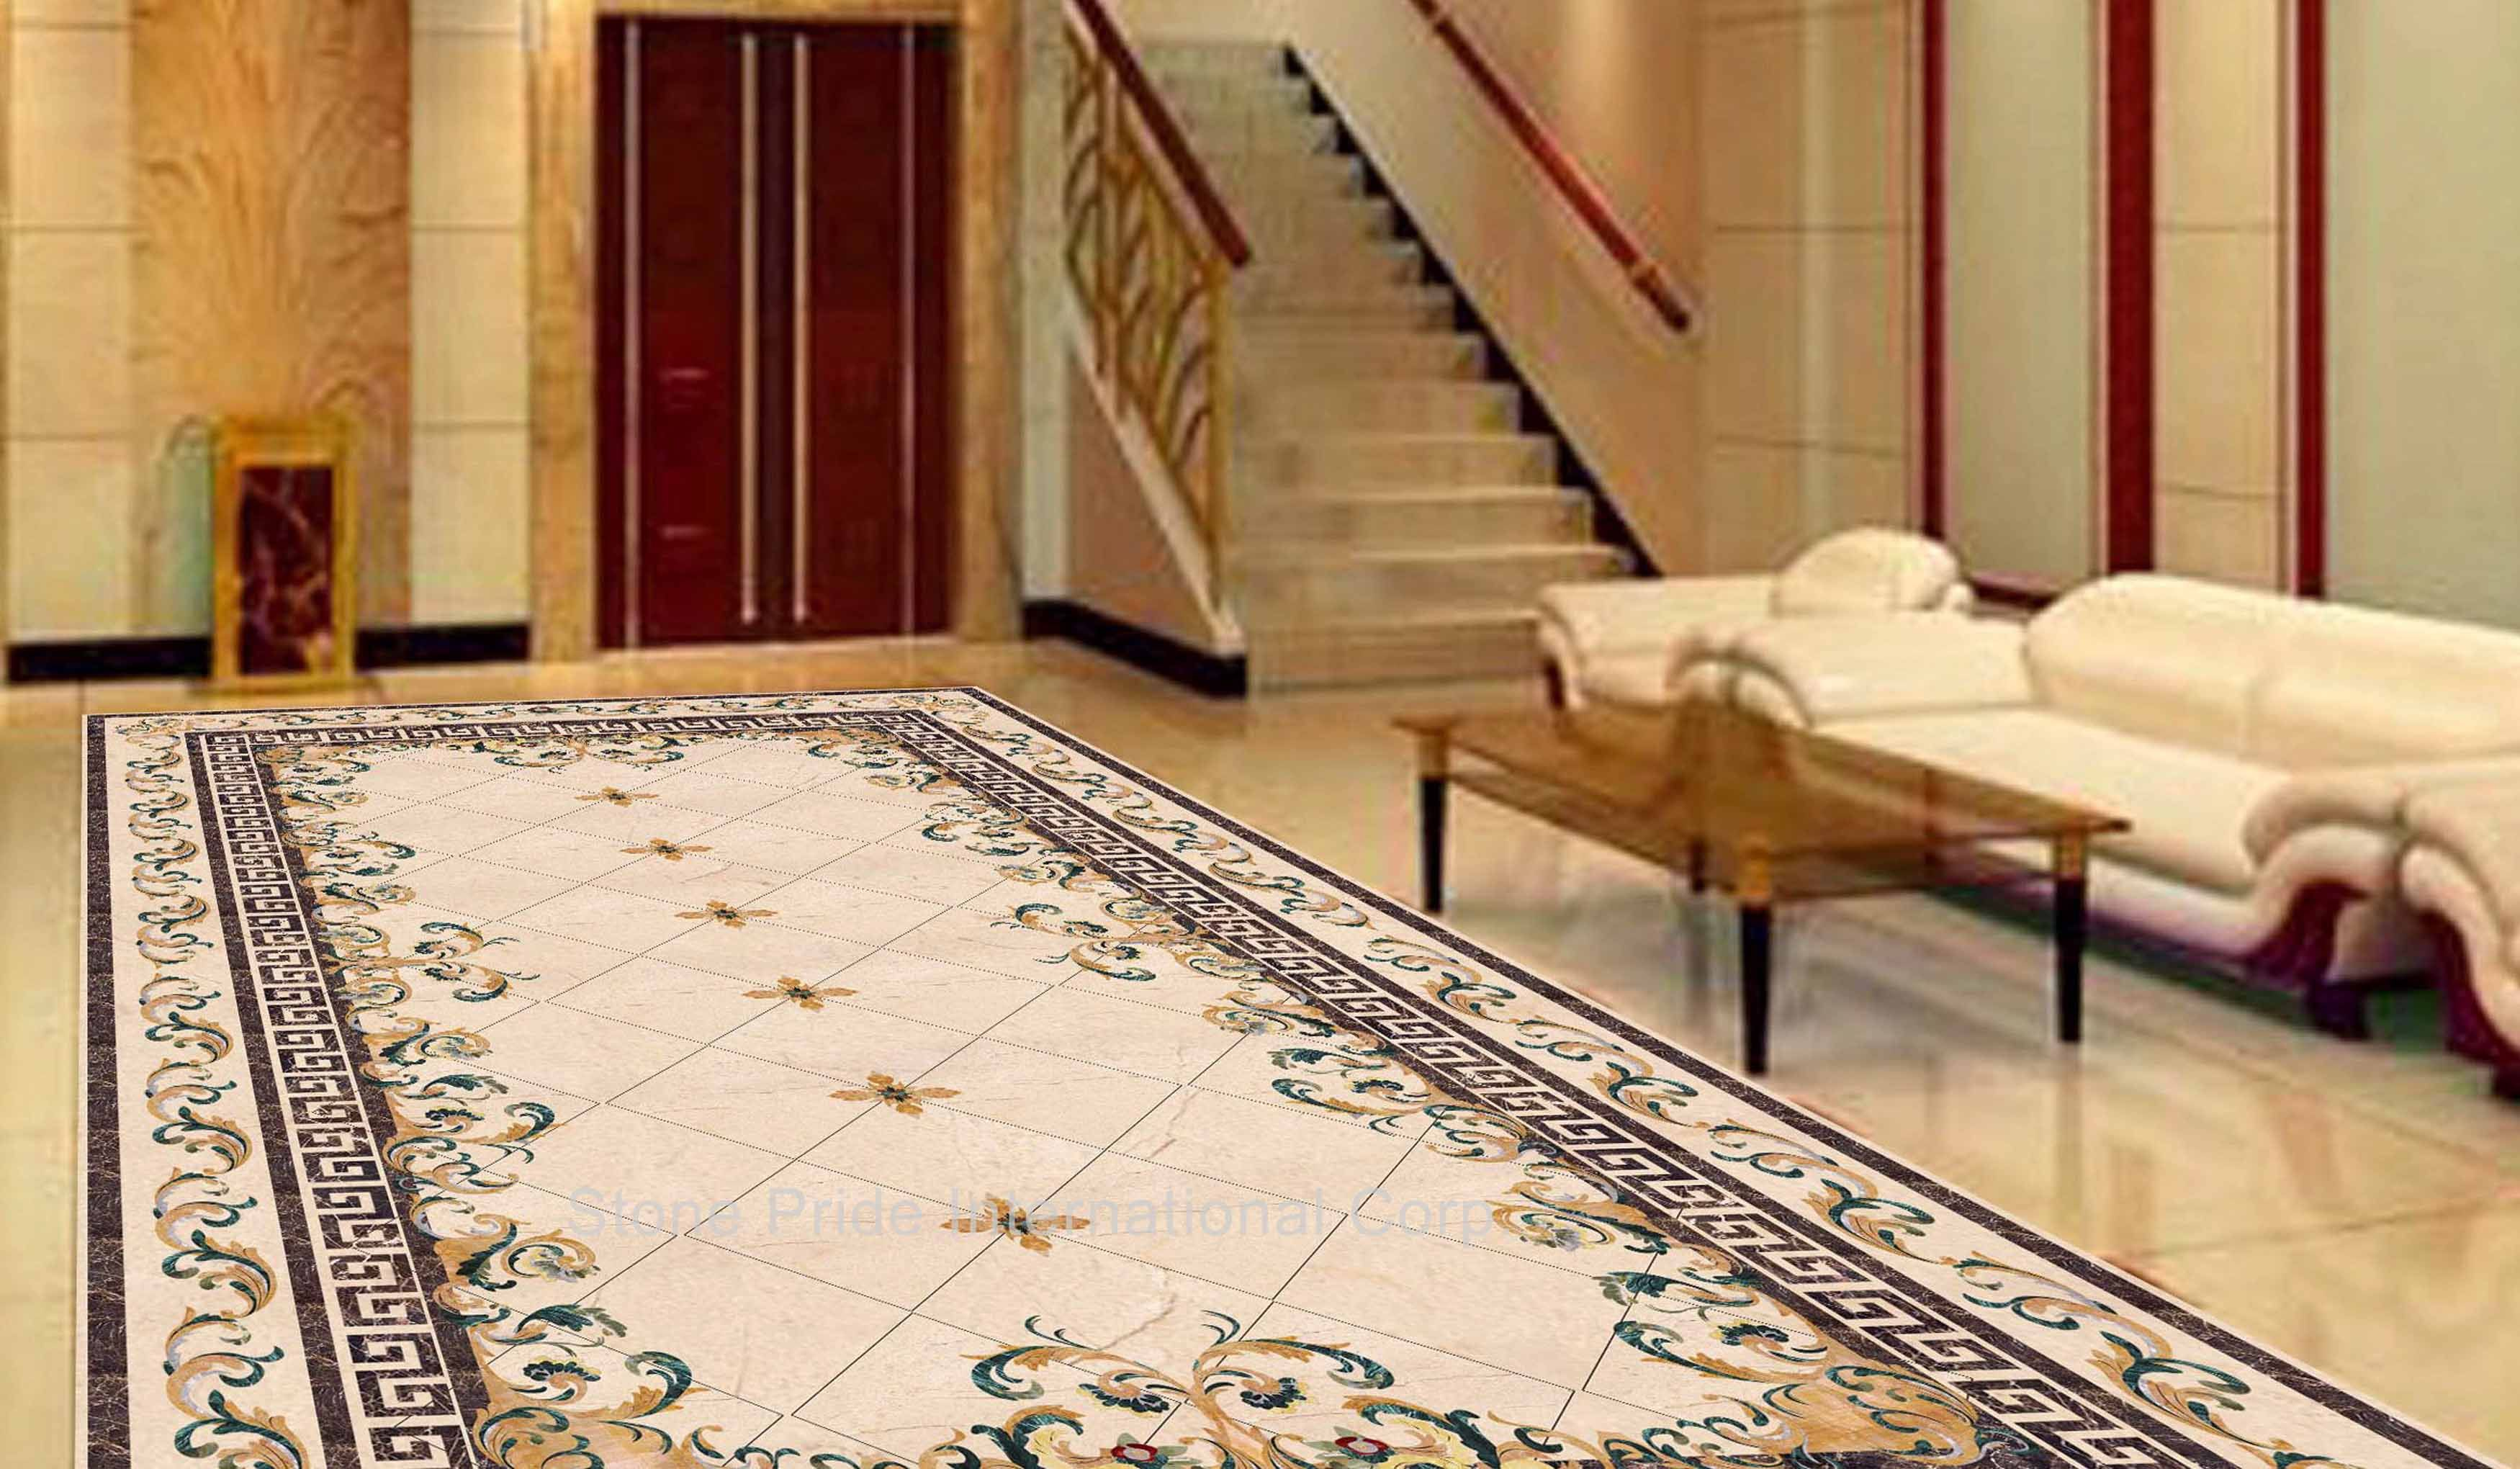 Floor design floor design floor design ideas floor for Tiles in a living room